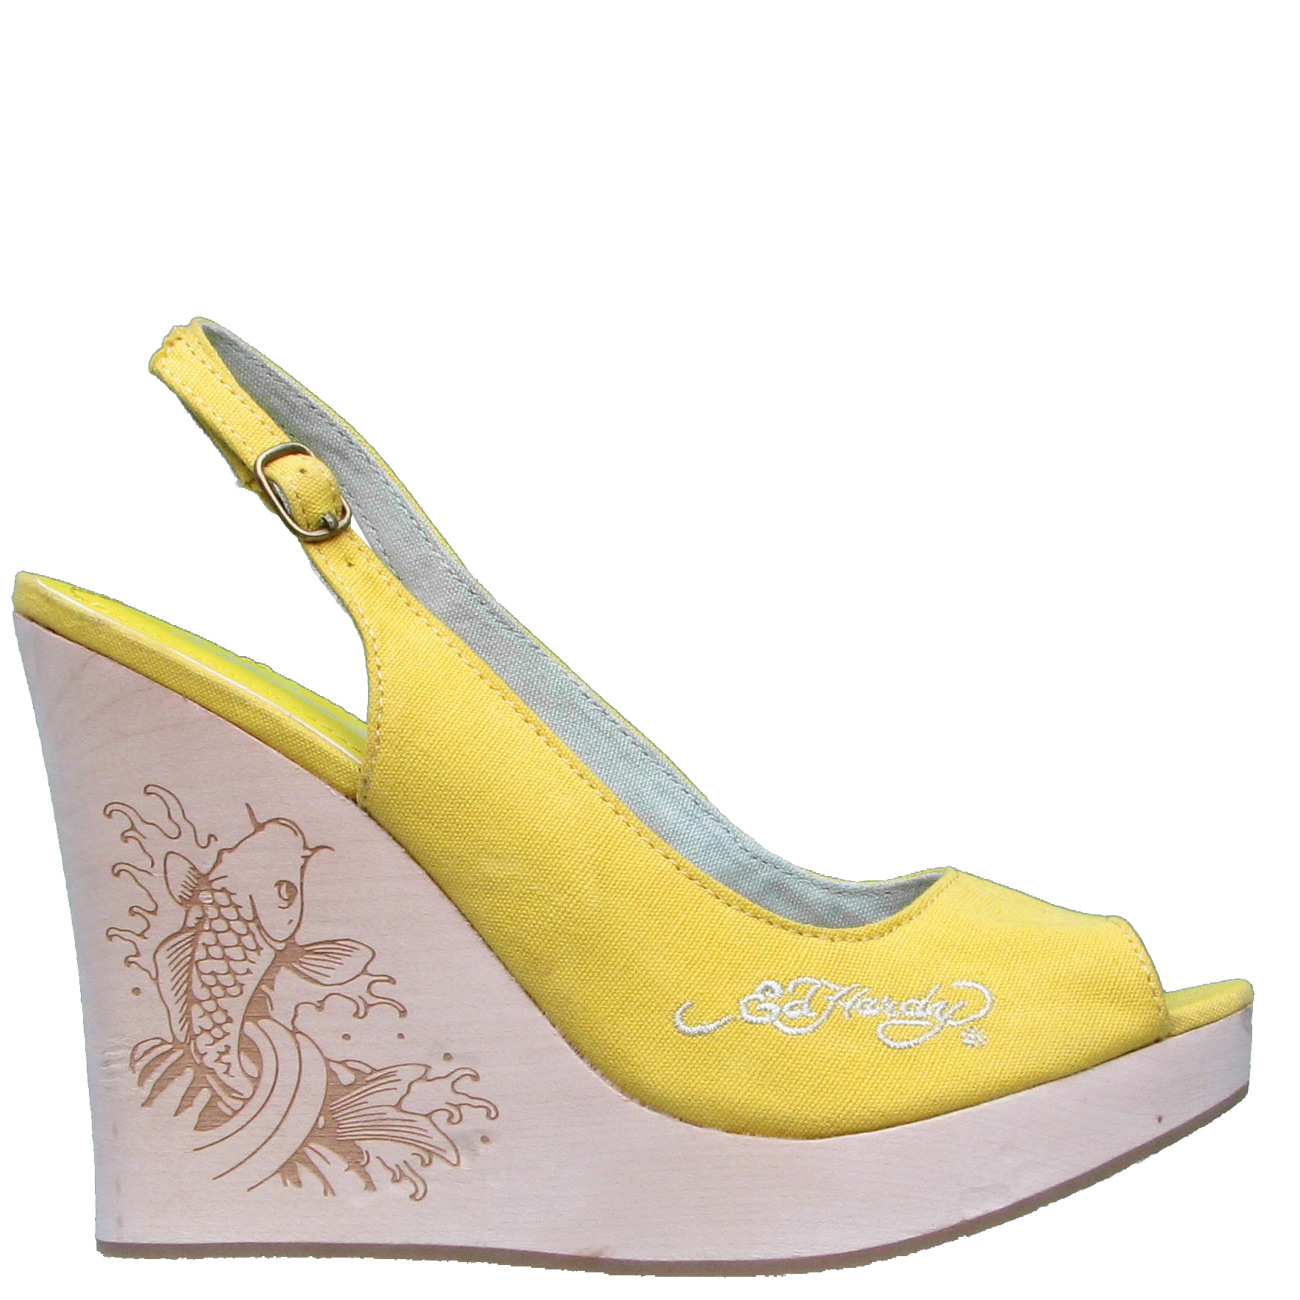 Ed Hardy Chantel Slingback Womens Wedge Shoe - Yellow